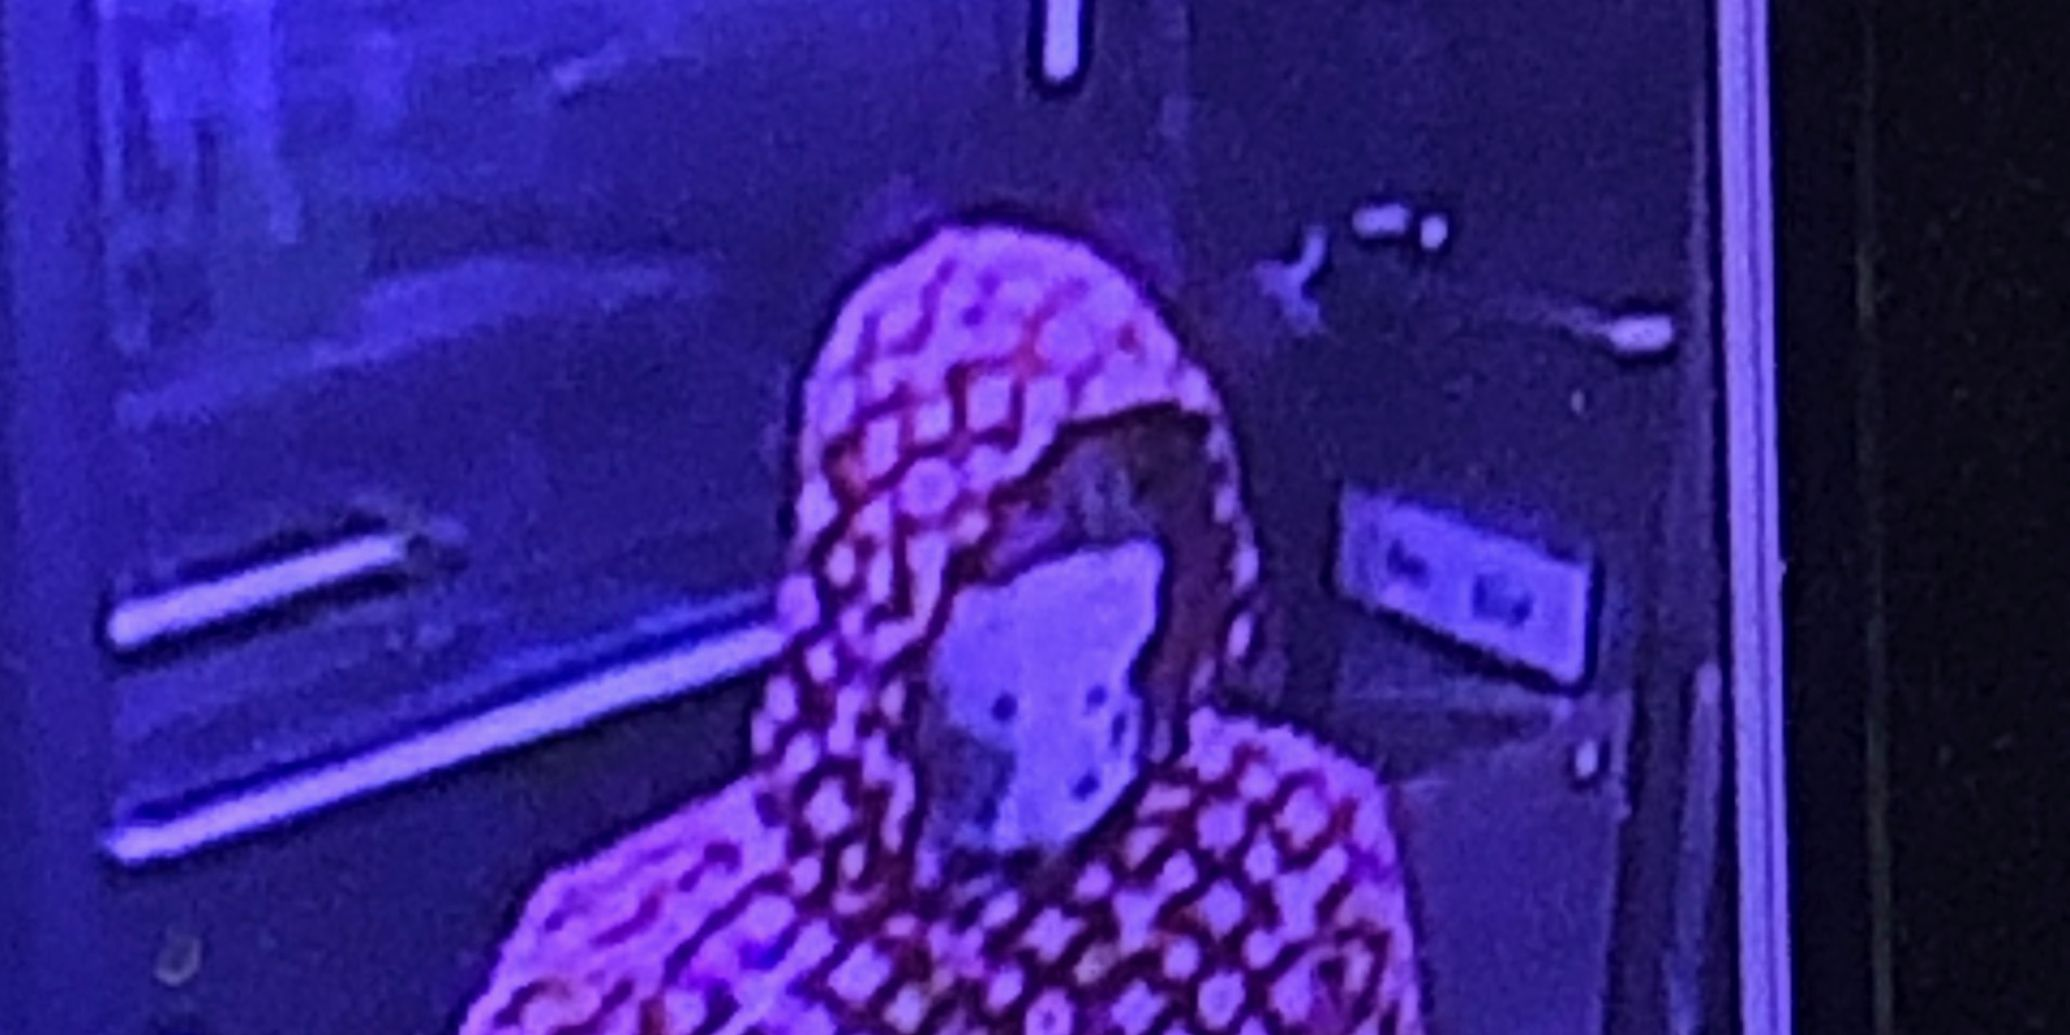 Police: 3 young men wearing bandanas rob Chesterfield 7-Eleven